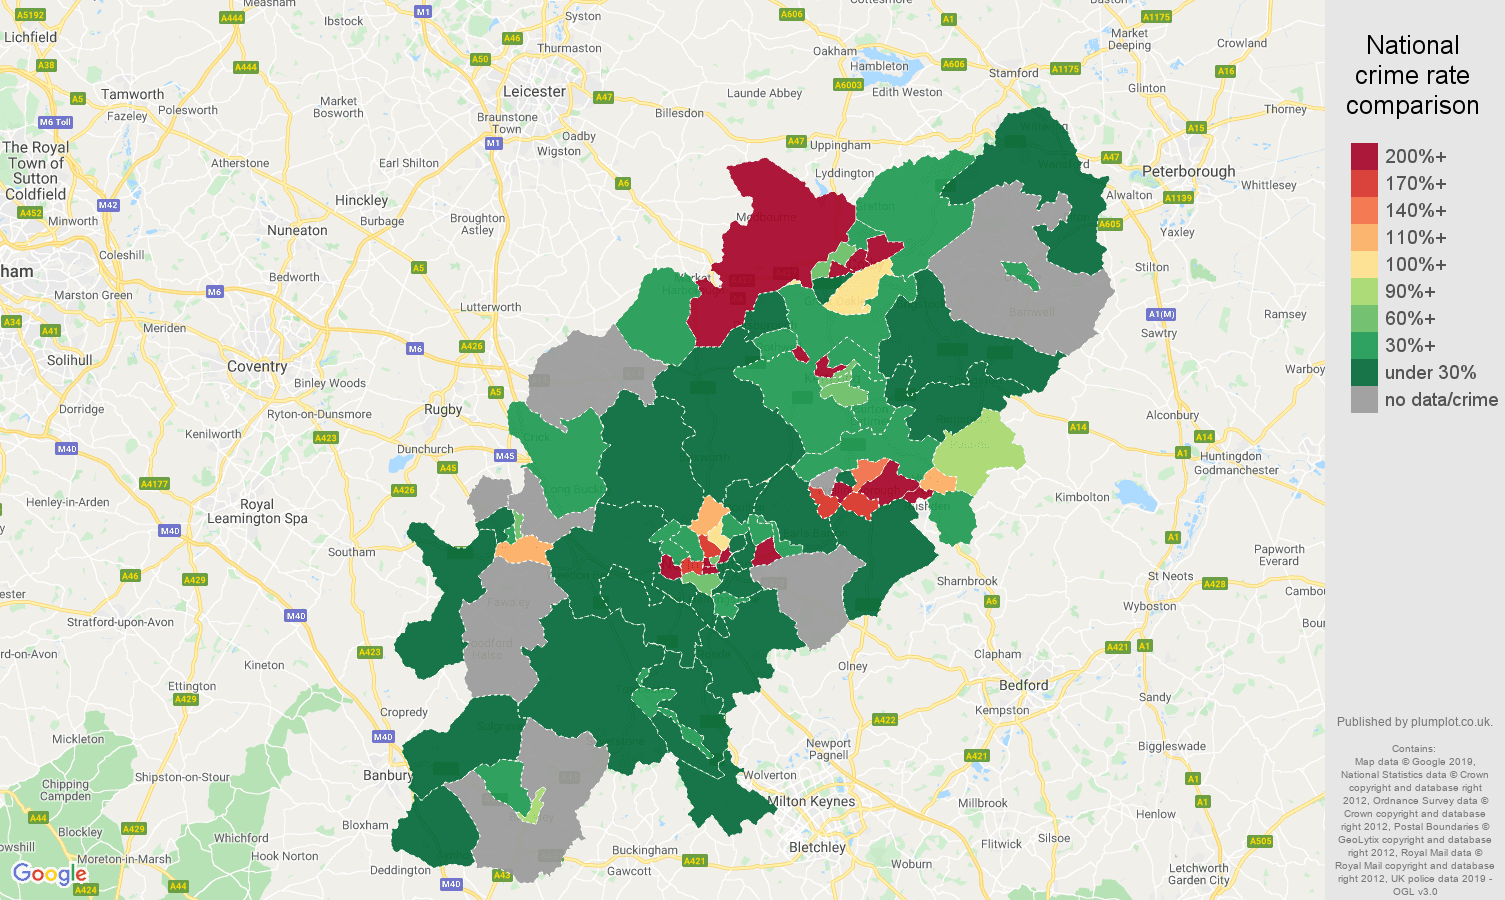 Northamptonshire shoplifting crime rate comparison map